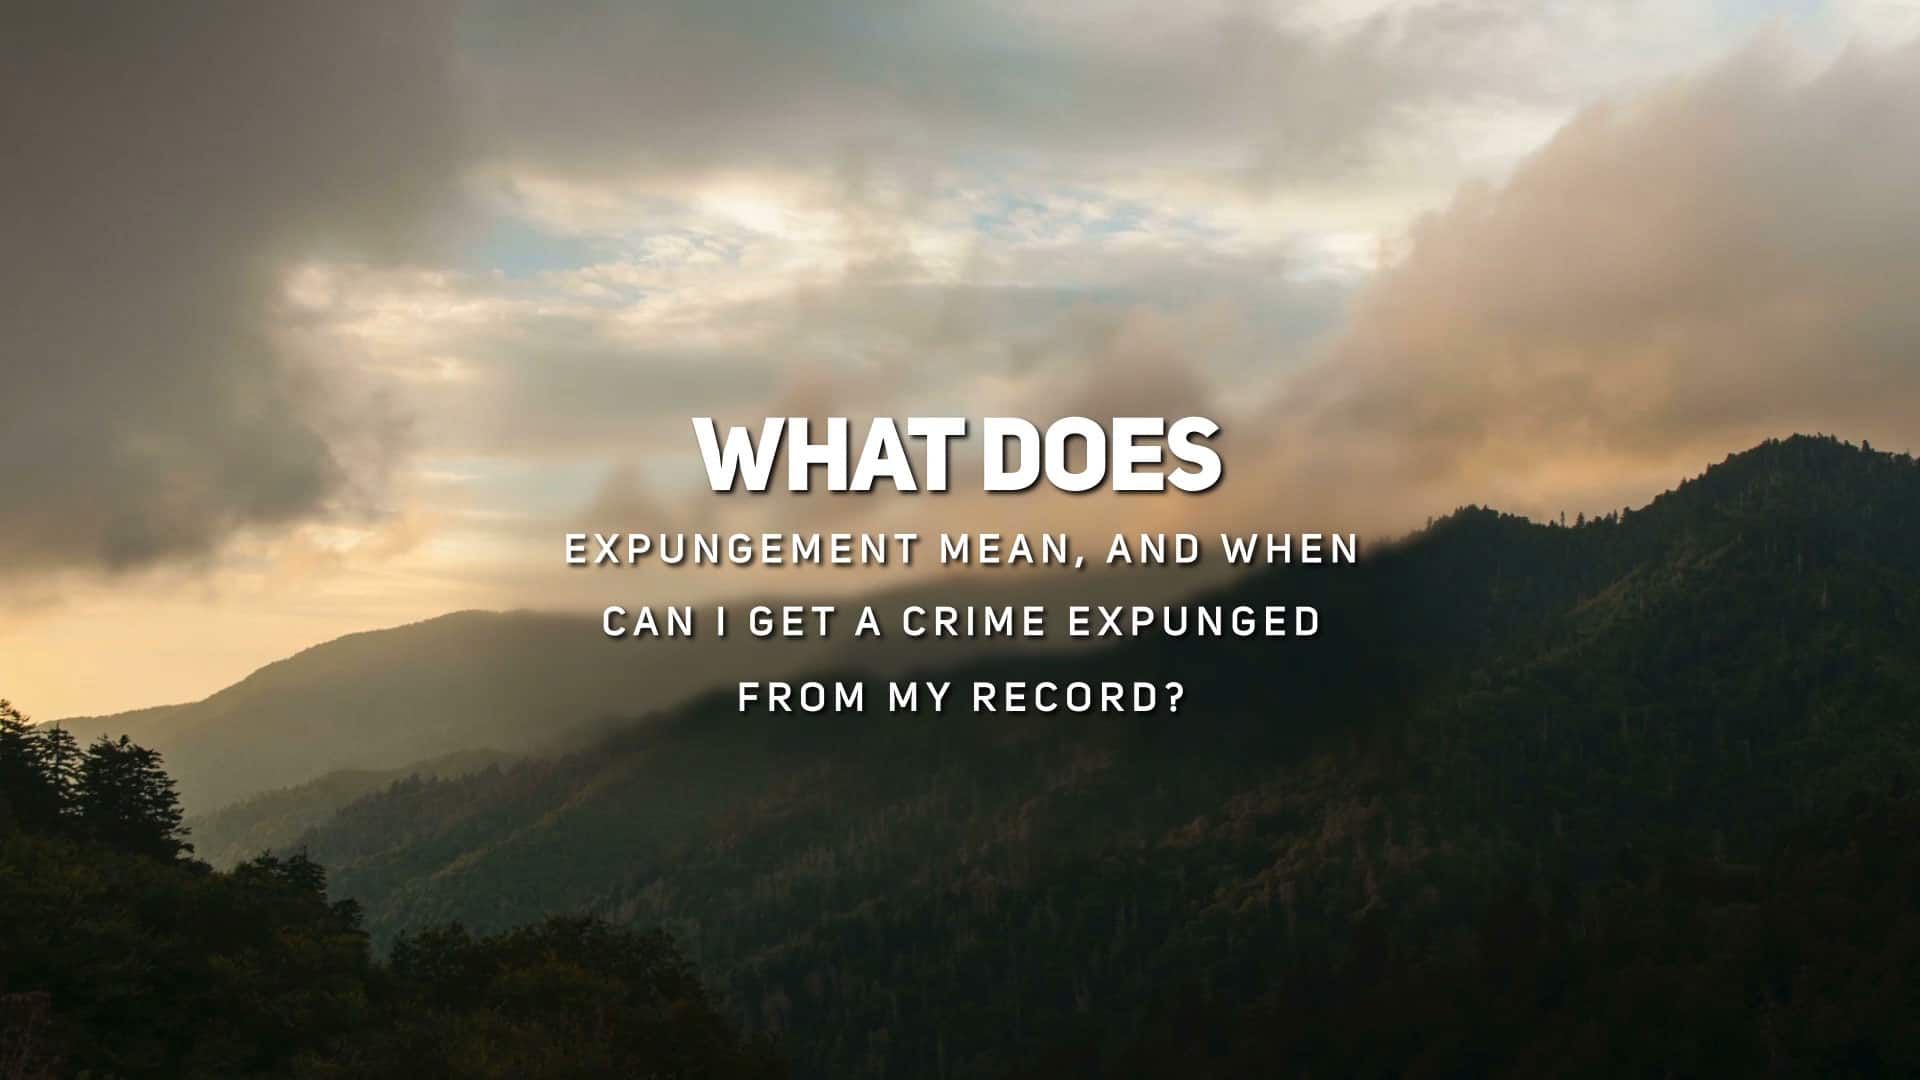 What Does Expungement Mean, and When Can I Get a Crime Expunged From My Record